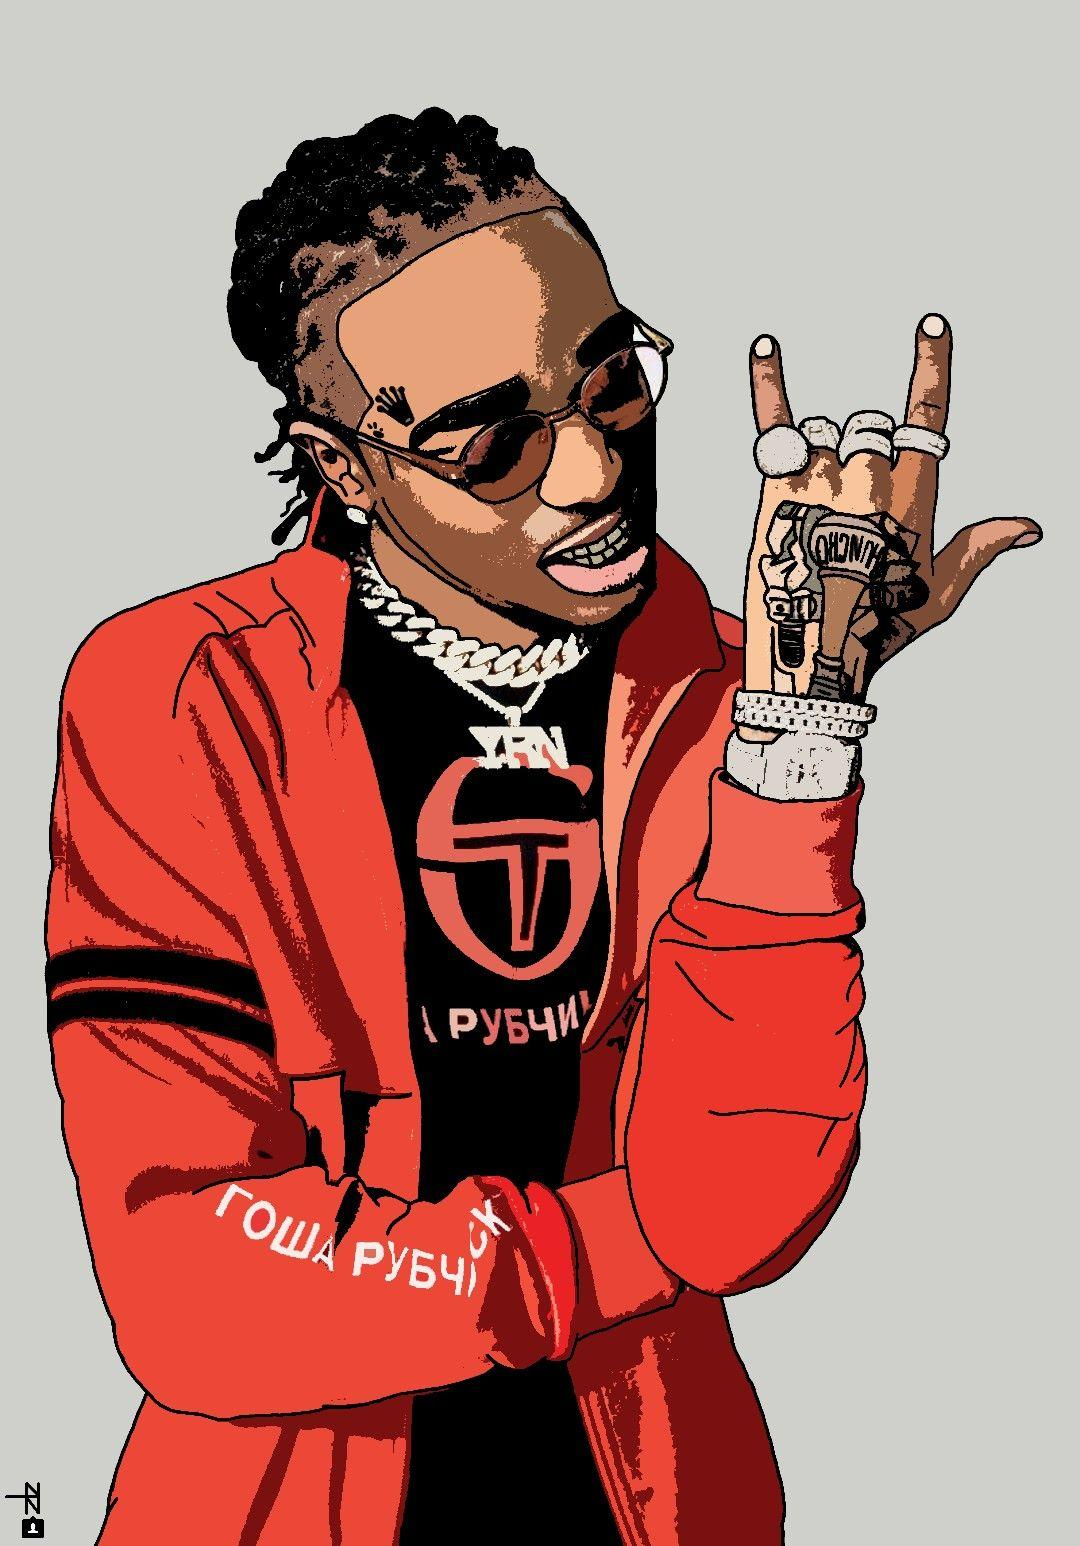 Drawing Rappers As Cartoons : drawing, rappers, cartoons, Cartoon, Rapper, Drawings, Lovers